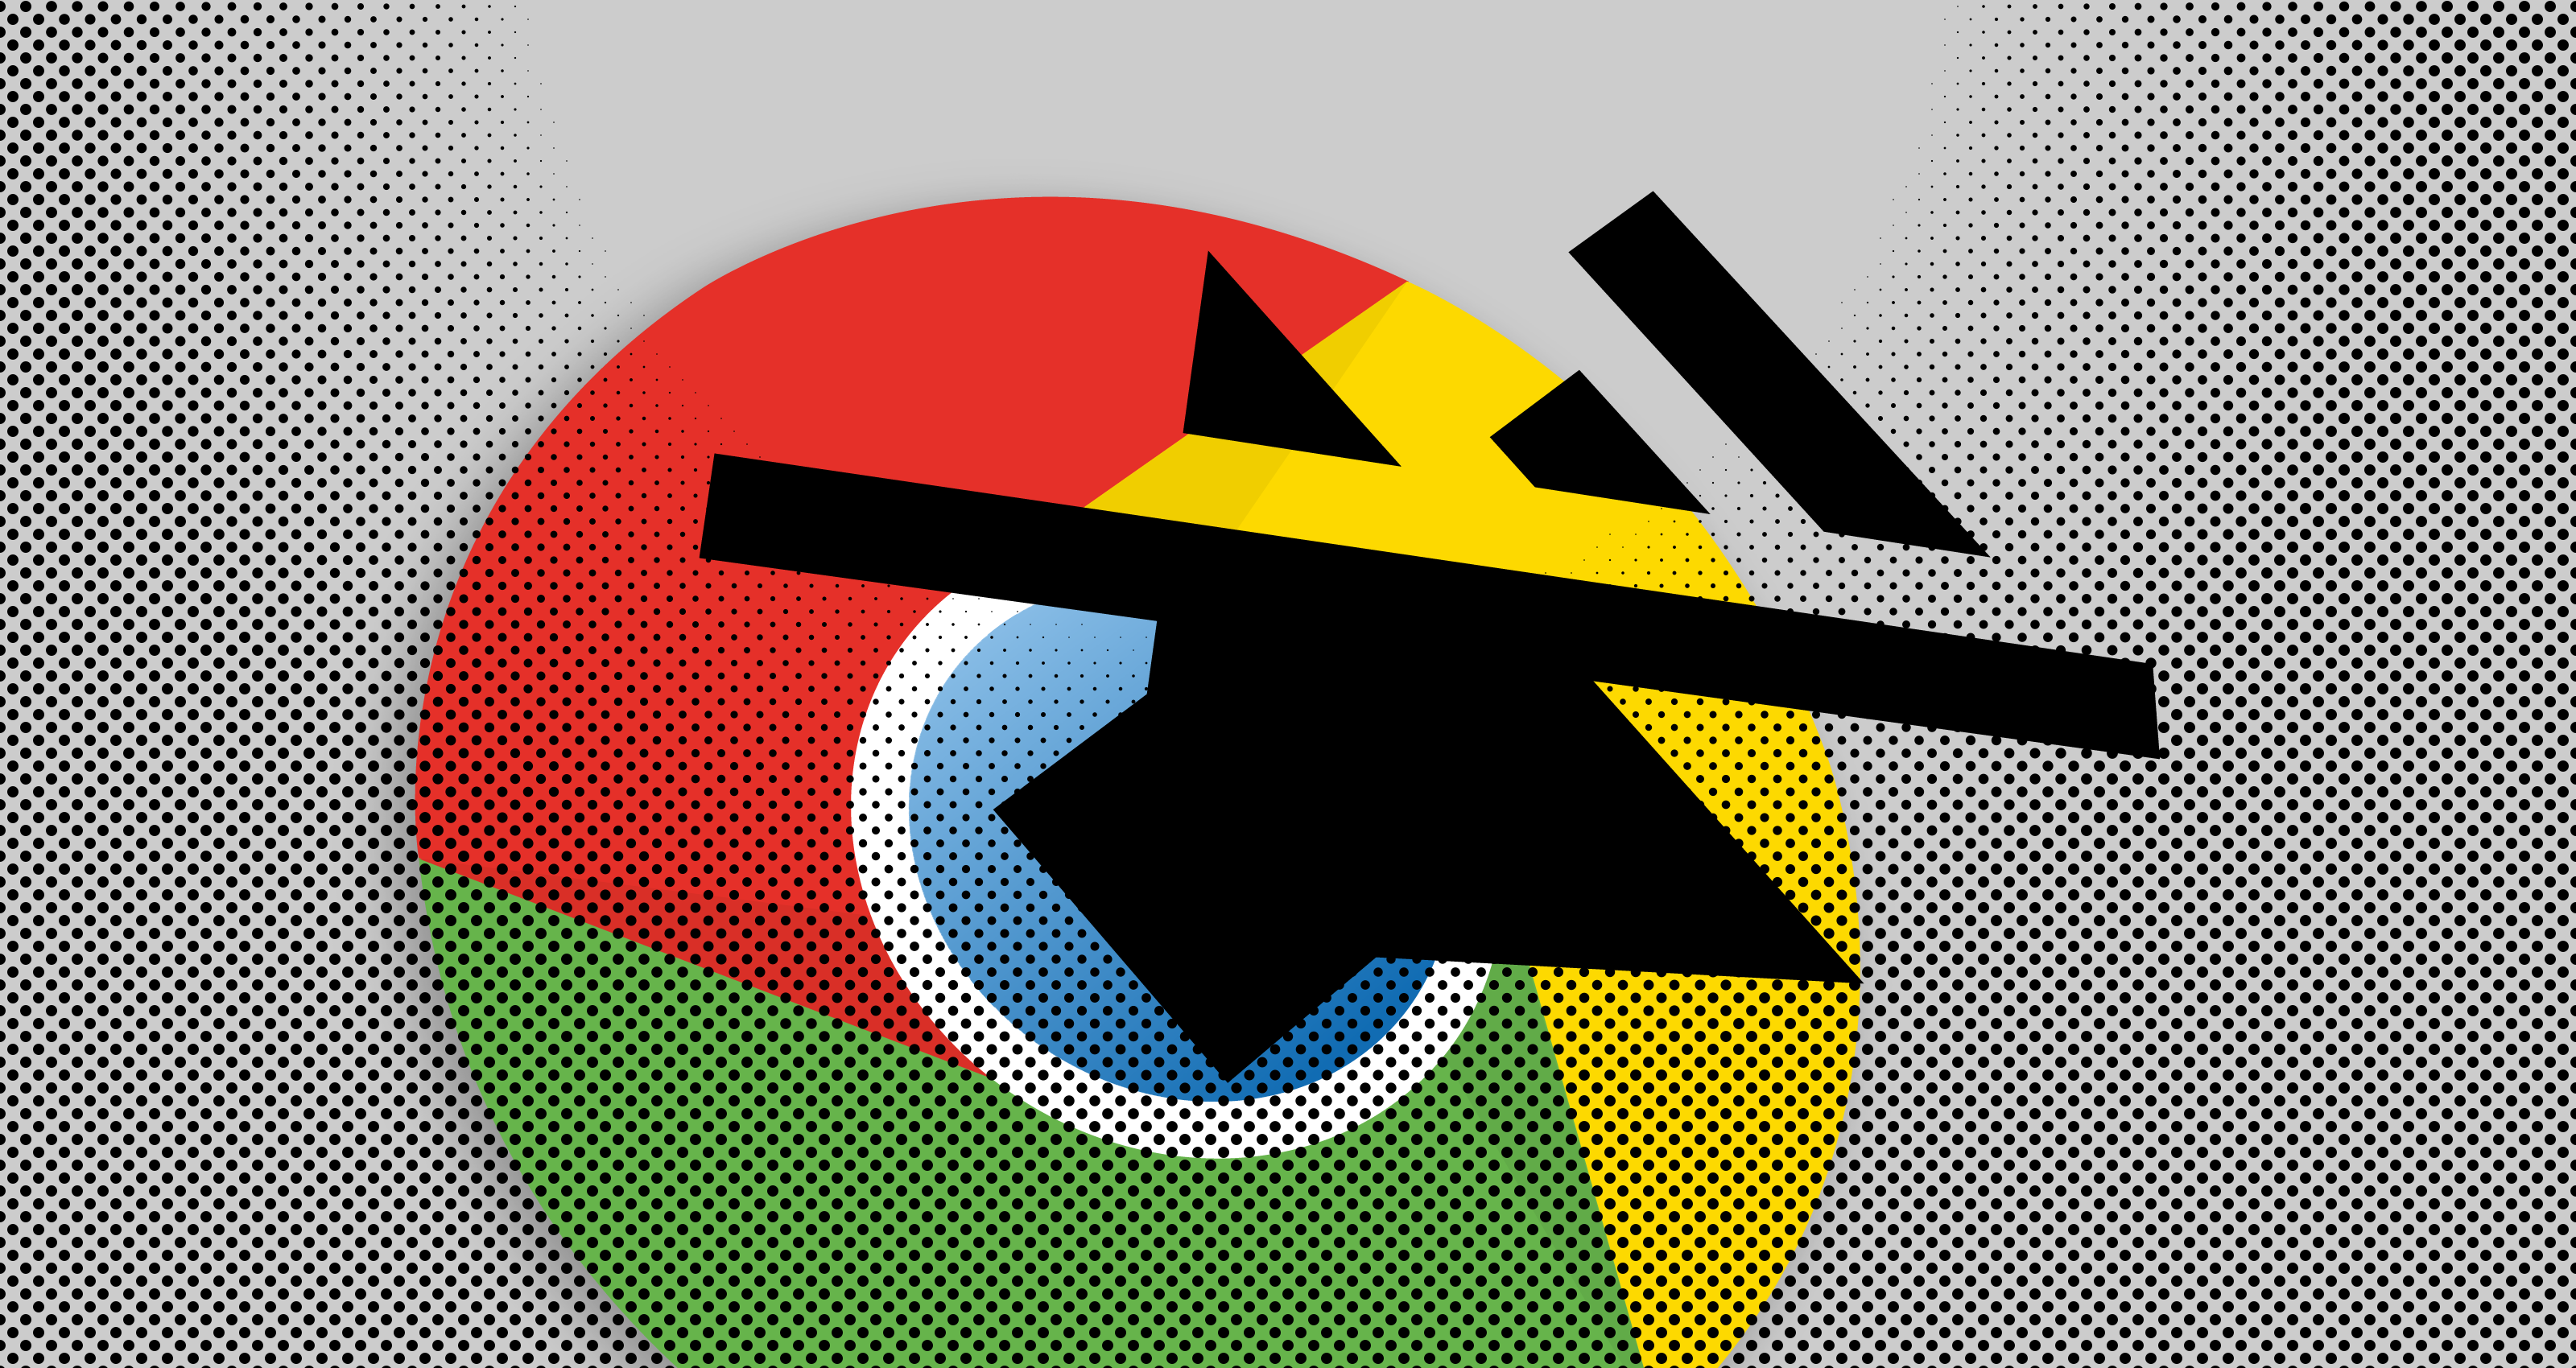 Google Chrome will block auto-playing videos based on your browsing habits